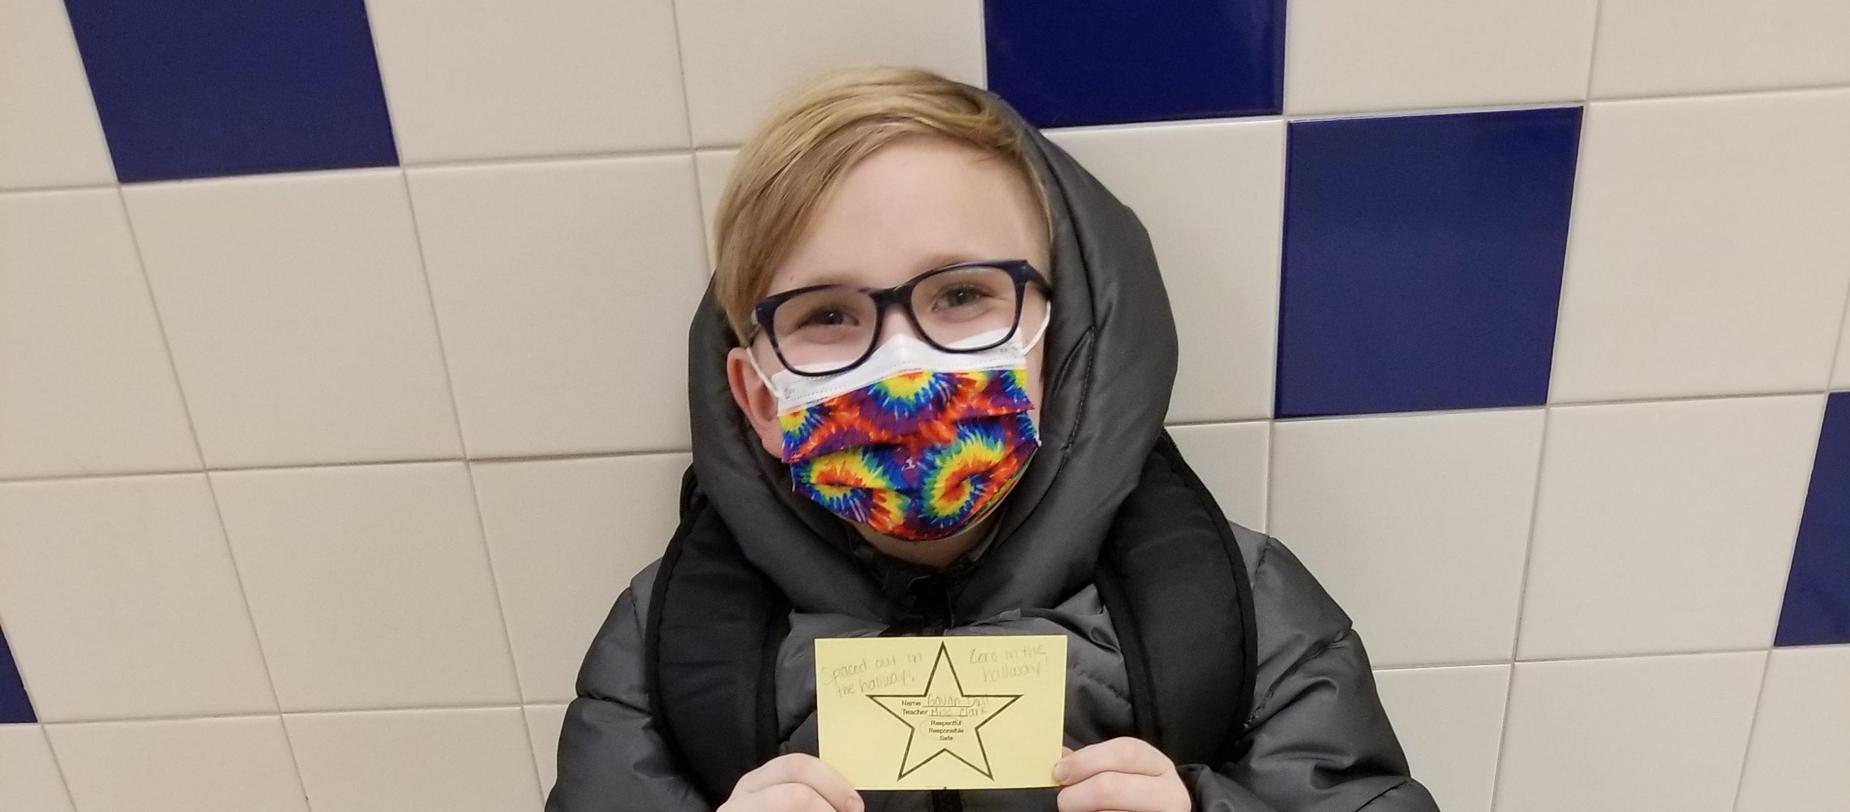 student wearing mask posing for the camera